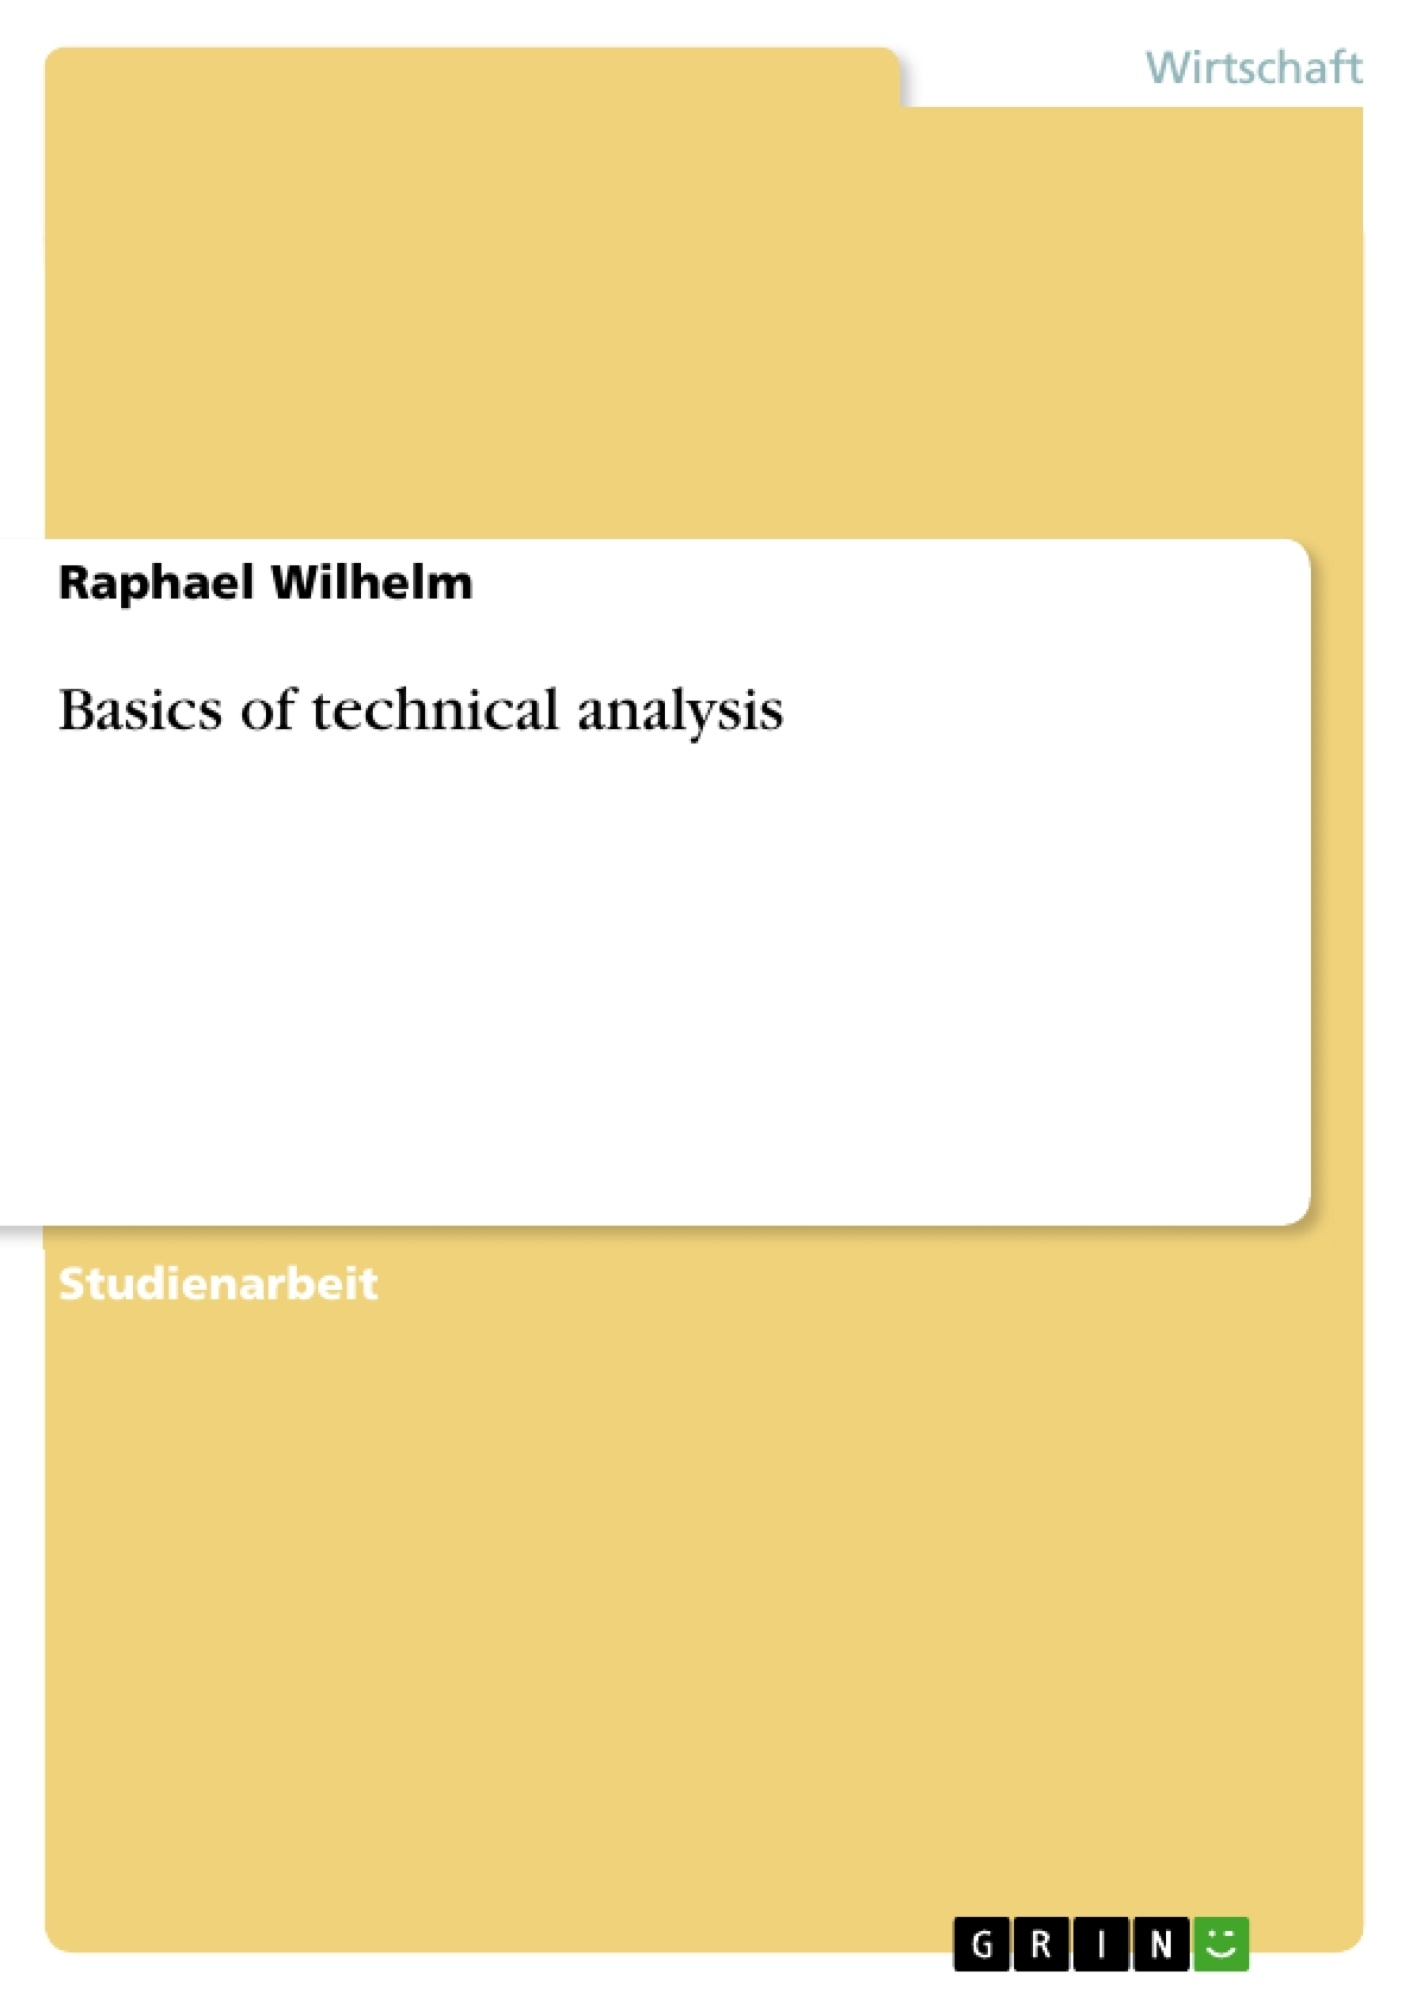 Titel: Basics of technical analysis